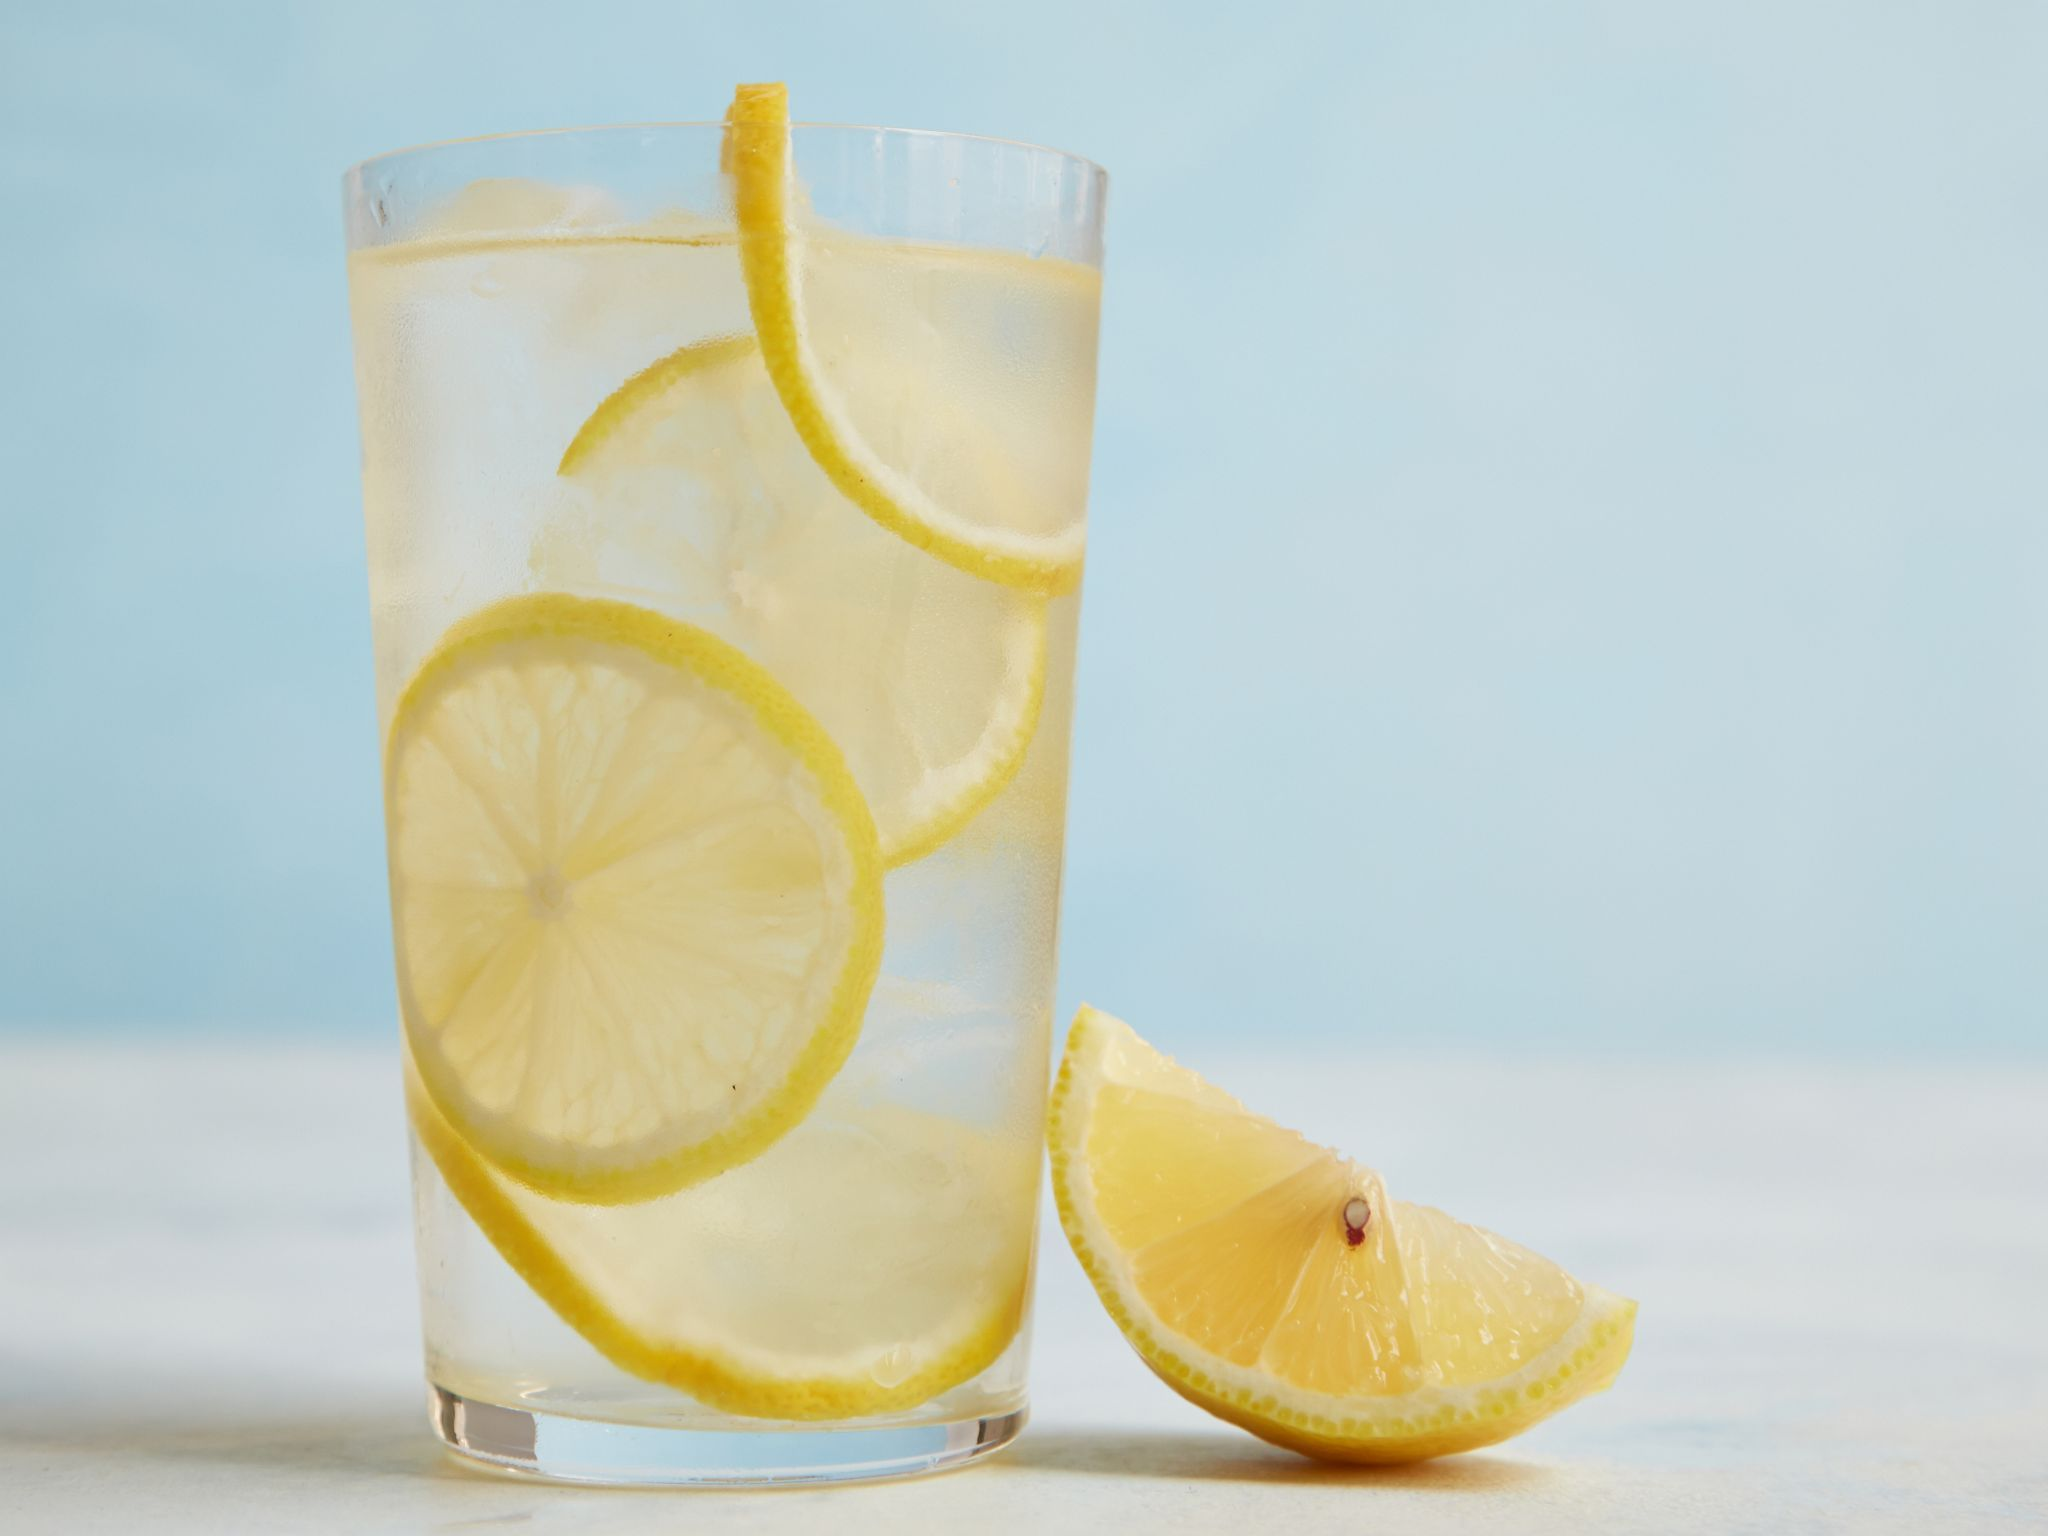 Lemoninfused water squeezing a wedge of lemon into a